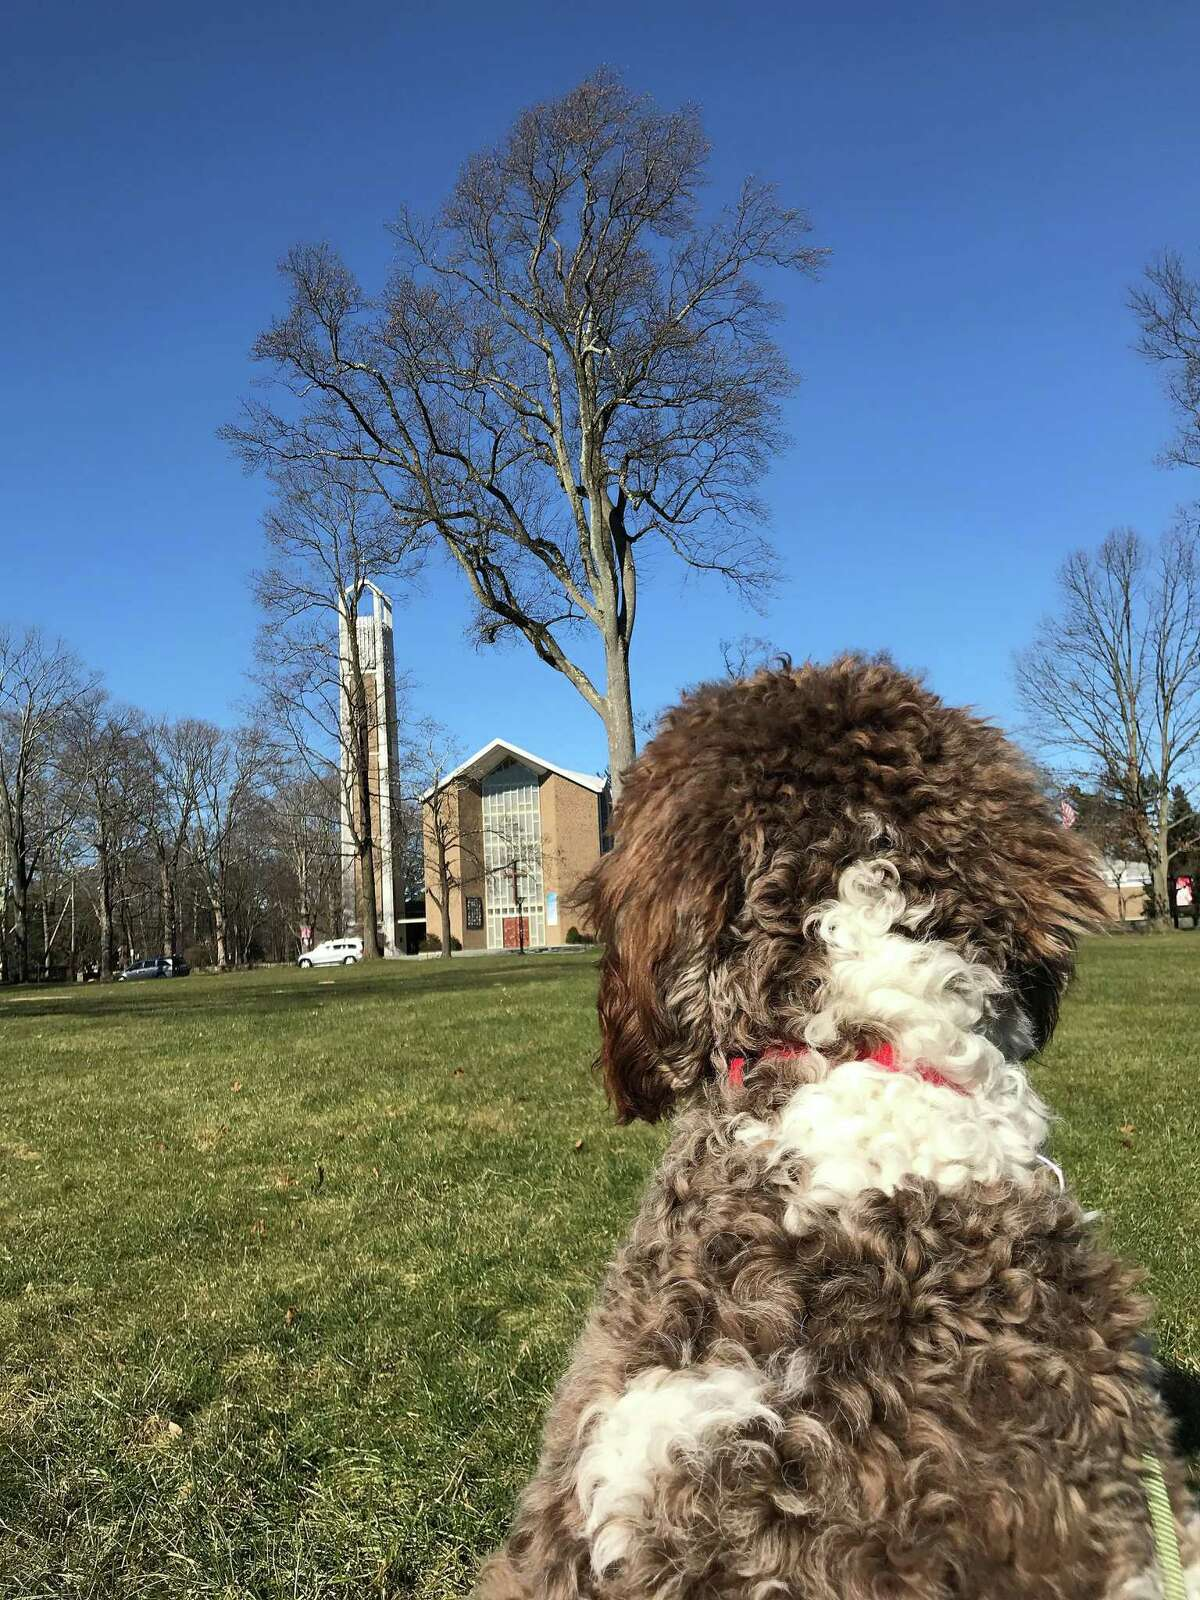 Frances, a Goldendoodle, looks over the great lawn at St. Mark's Episcopal Chuch on Oenoke Ridge, where she has joined the staff as a pastoral care dog. The New Canaan Men's Club usually meets on Fridays at St. Mark's for the club's regular weekly meeting, but it has canceled all of its activities until further.